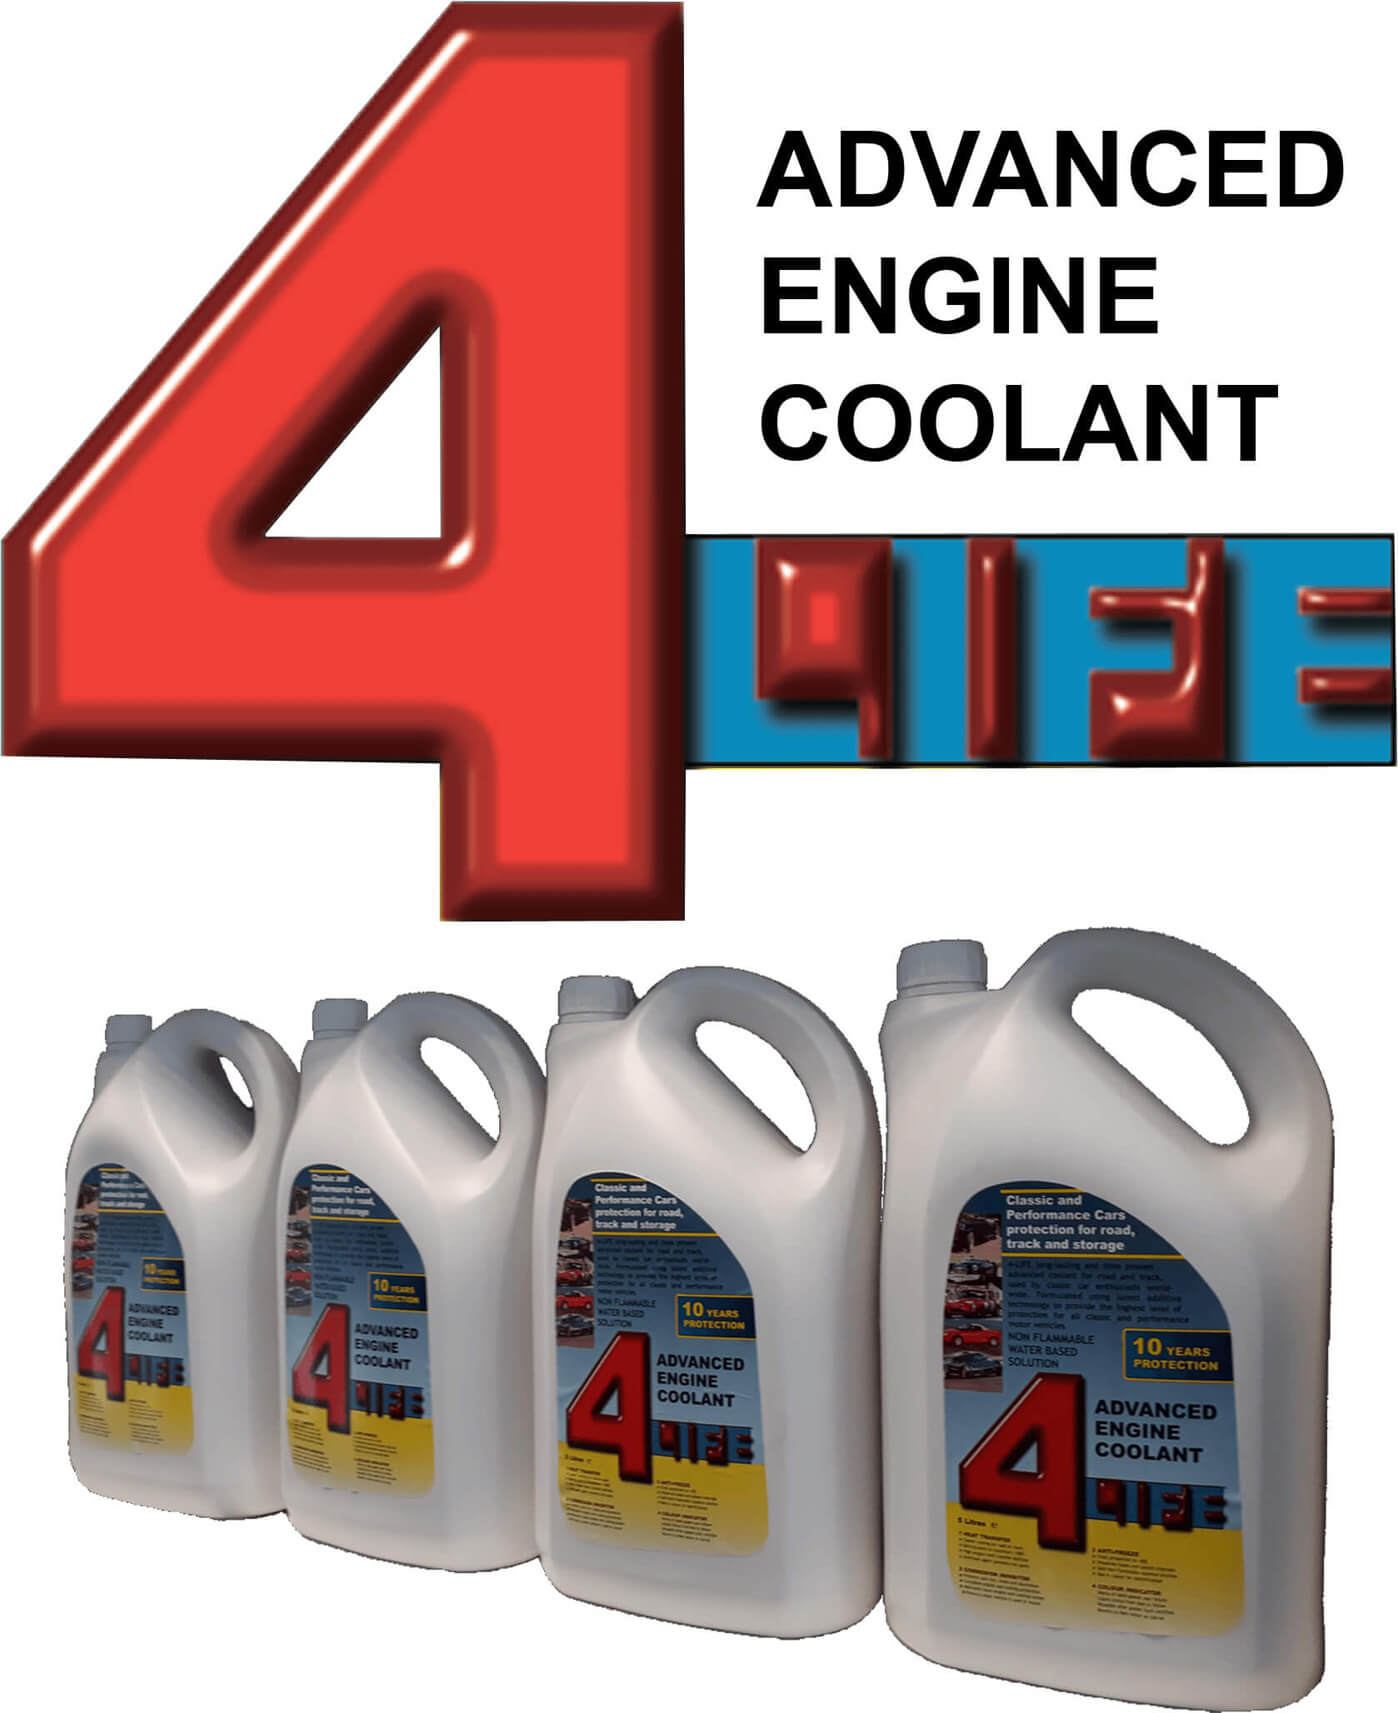 4Life logo and bottles of Forlife coolant